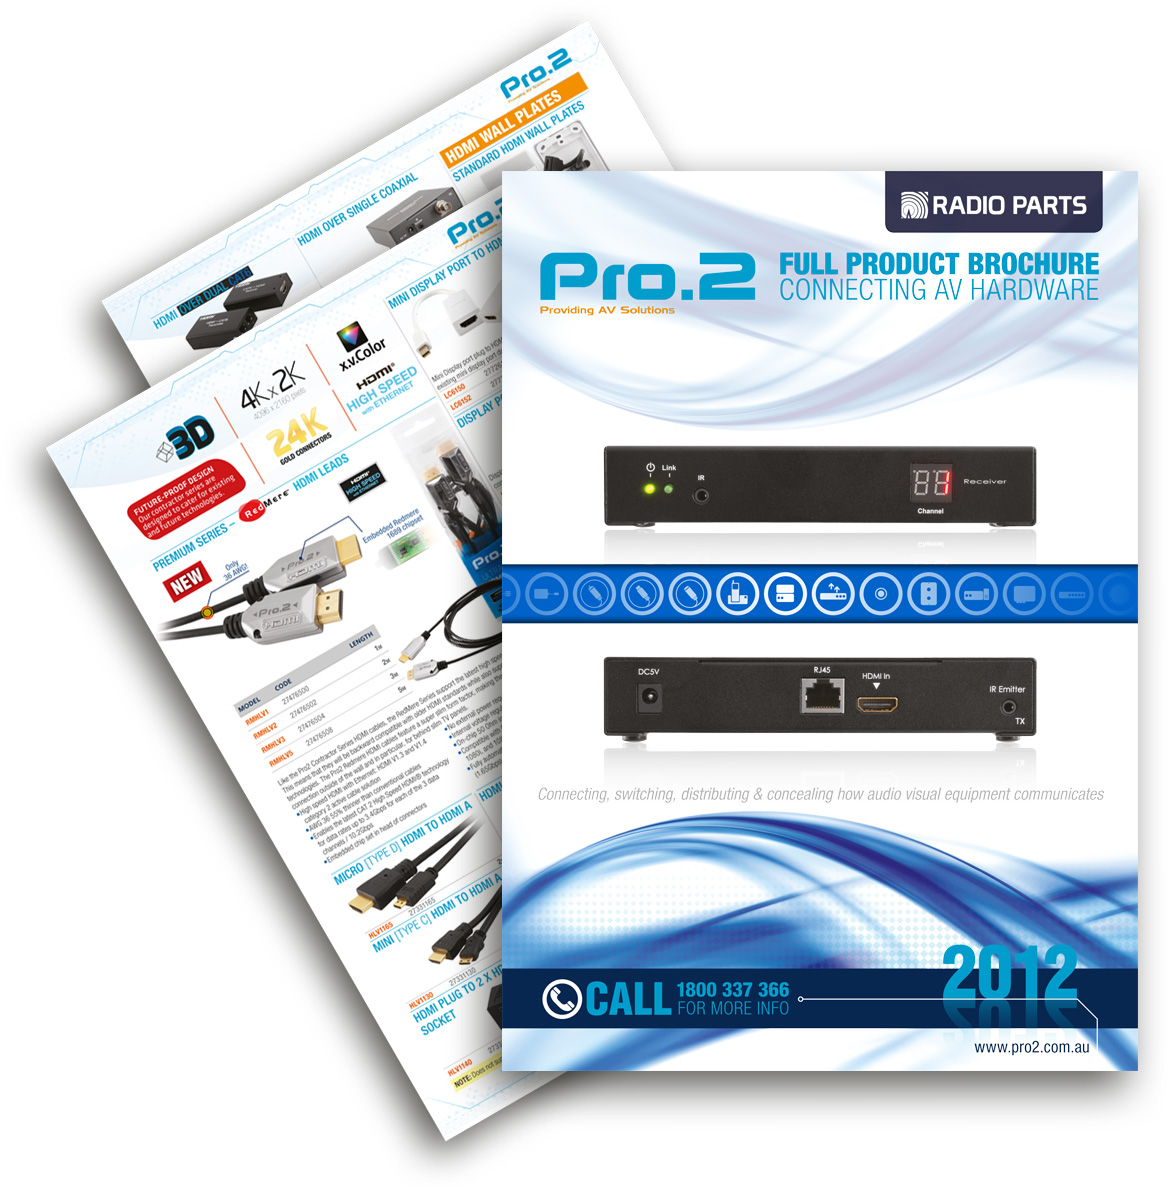 Pro2 2012 Catalogue Out NOW!